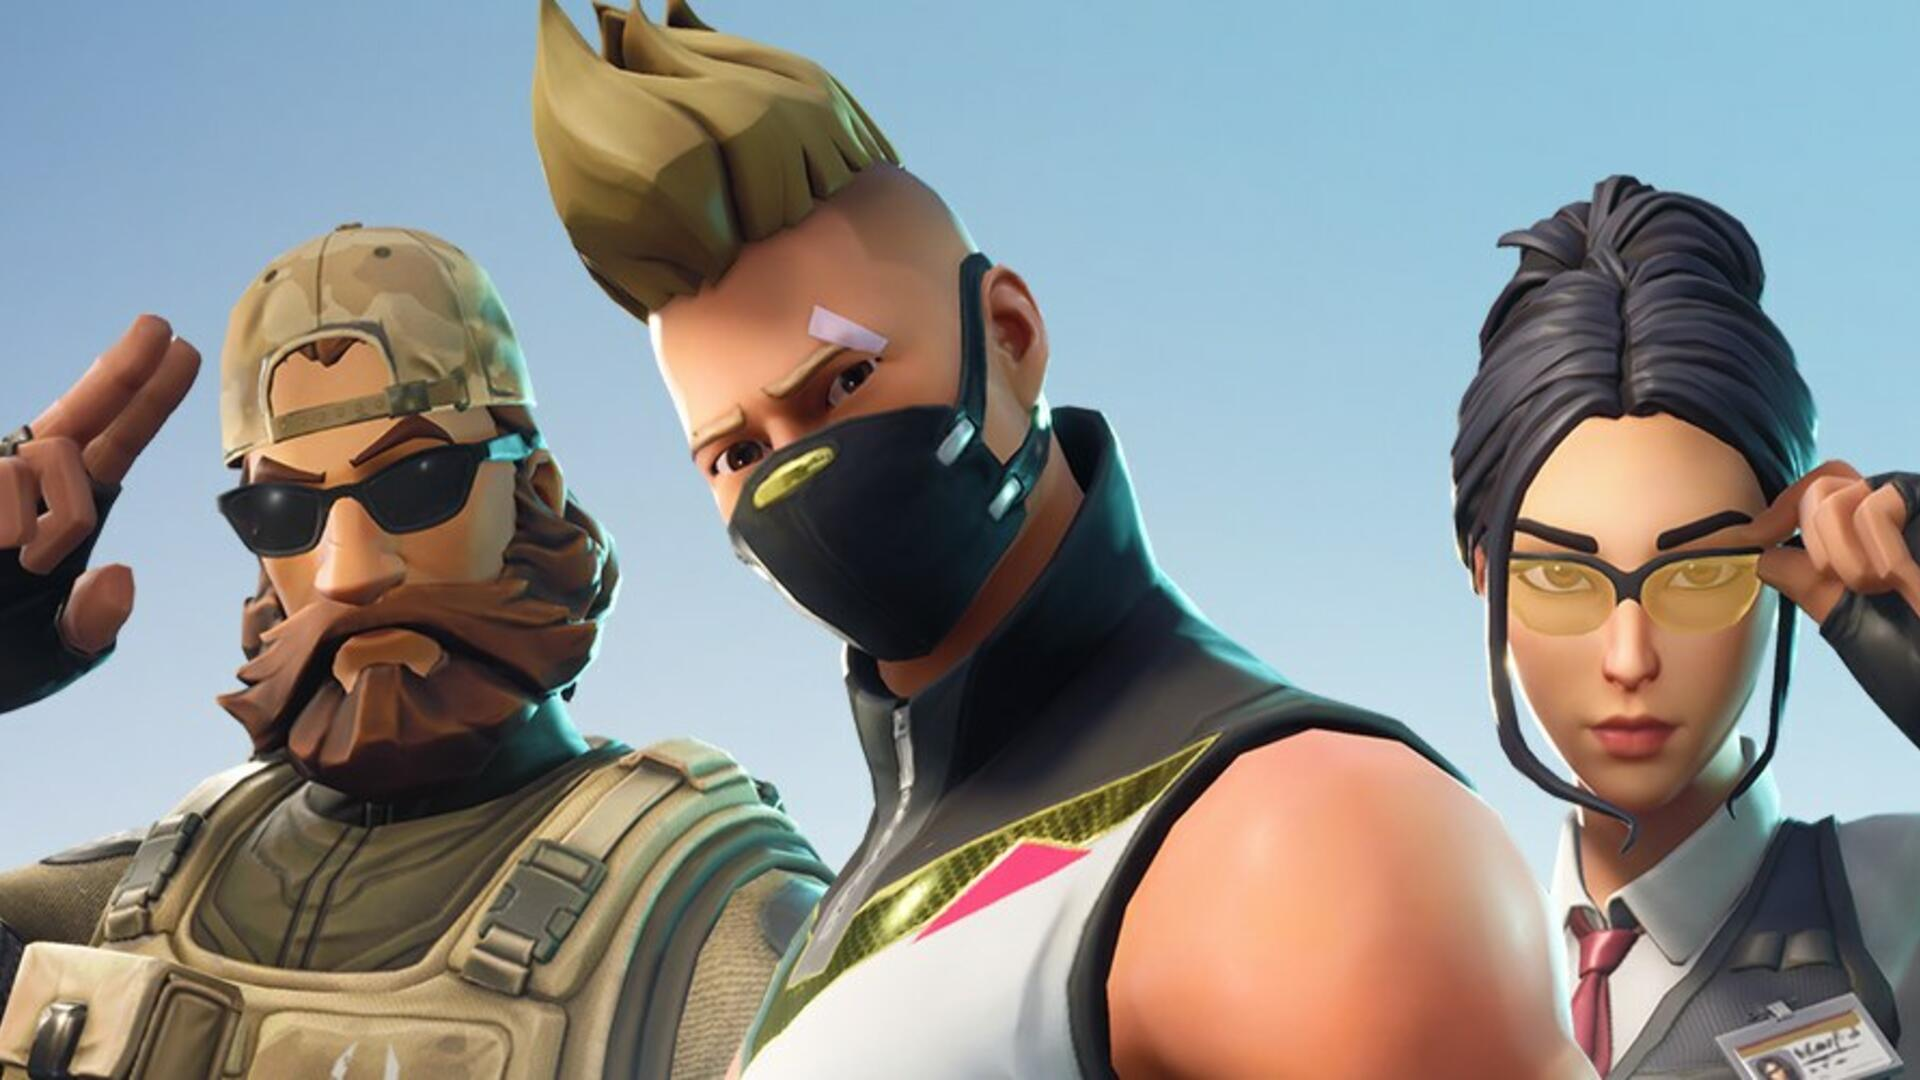 Fortnite V5.40 Content Update Out Now, Adds New Suppressed Assault Rifle